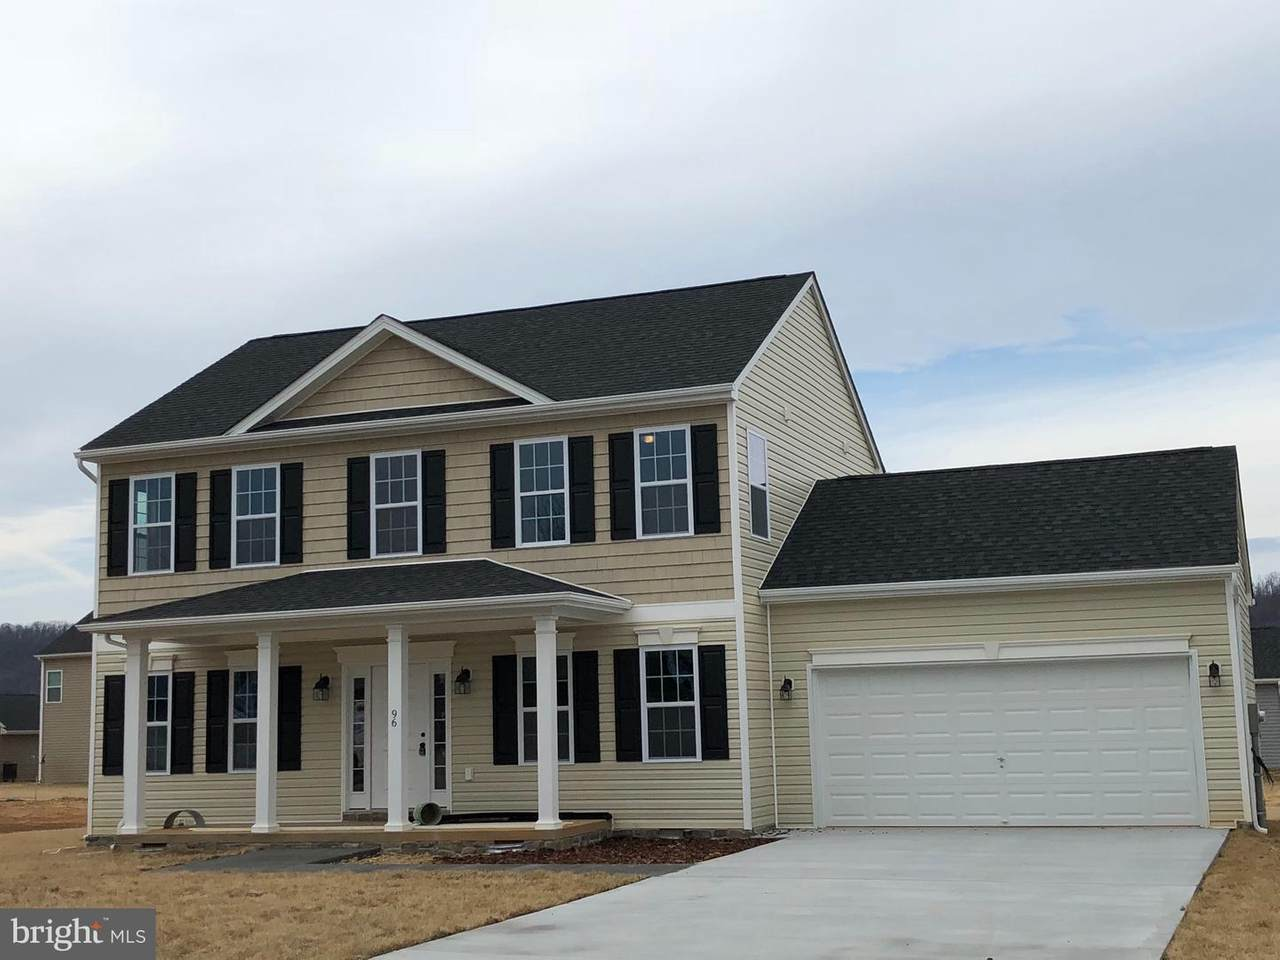 Lot 52 Pochards Drive - Photo 1